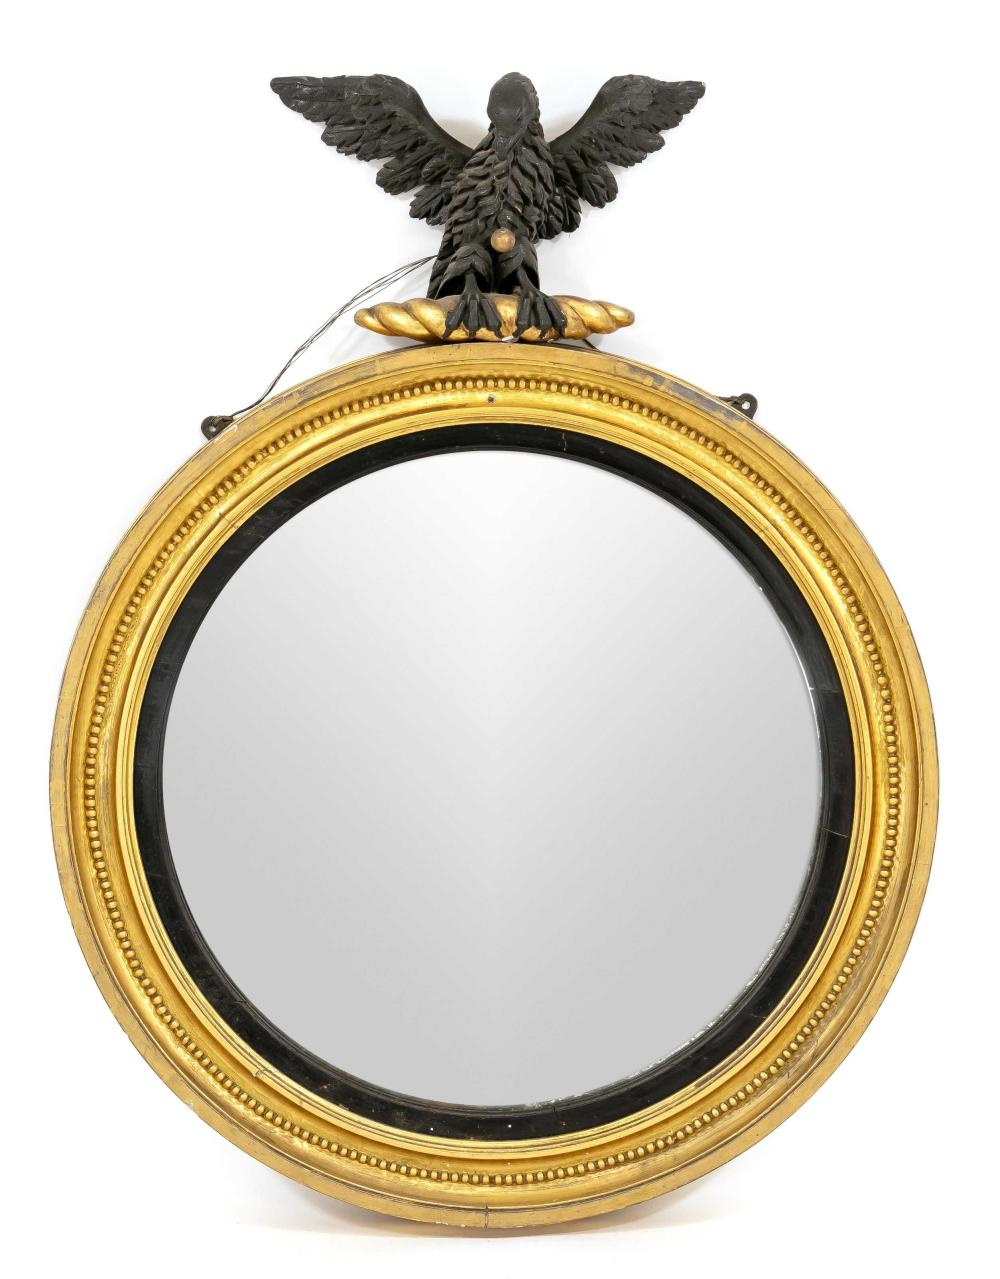 Round mirror with eagle crowni